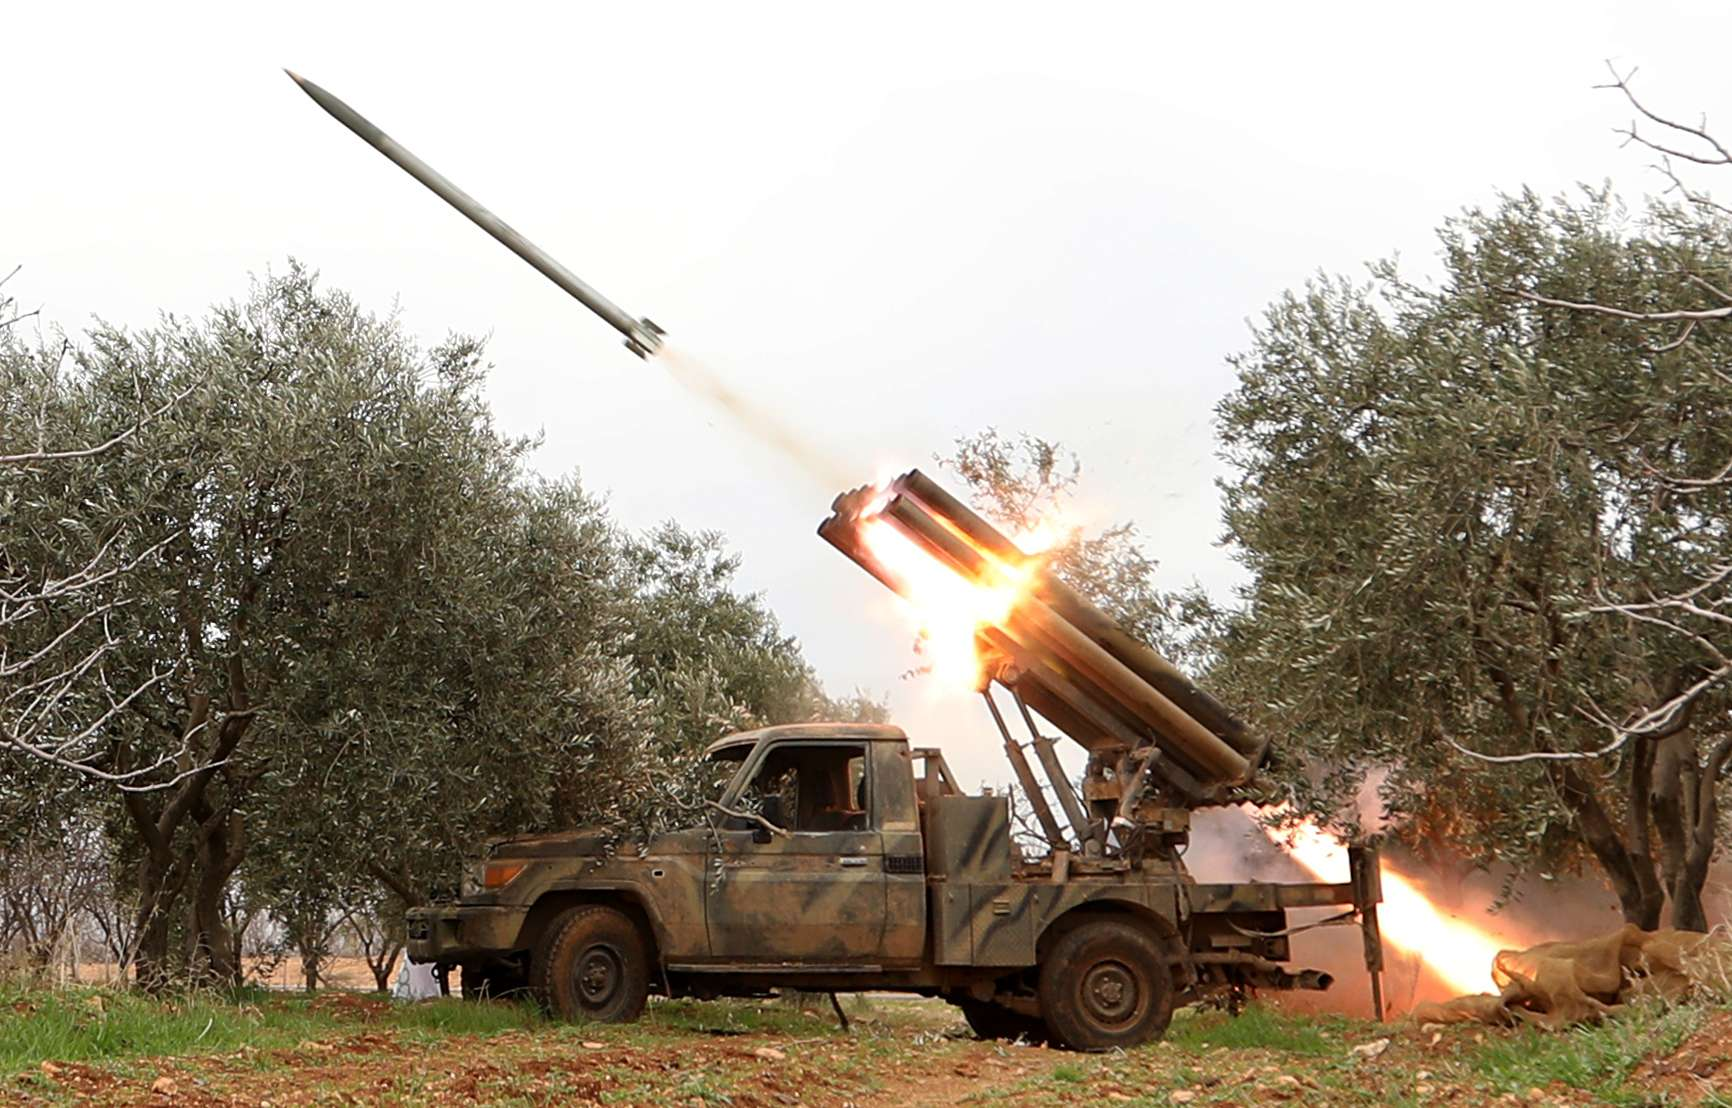 Fighters from the Hayat Tahrir al-Sham fire missiles from a village near al-Tabanah in Syria's Idlib province, in January. (AFP)